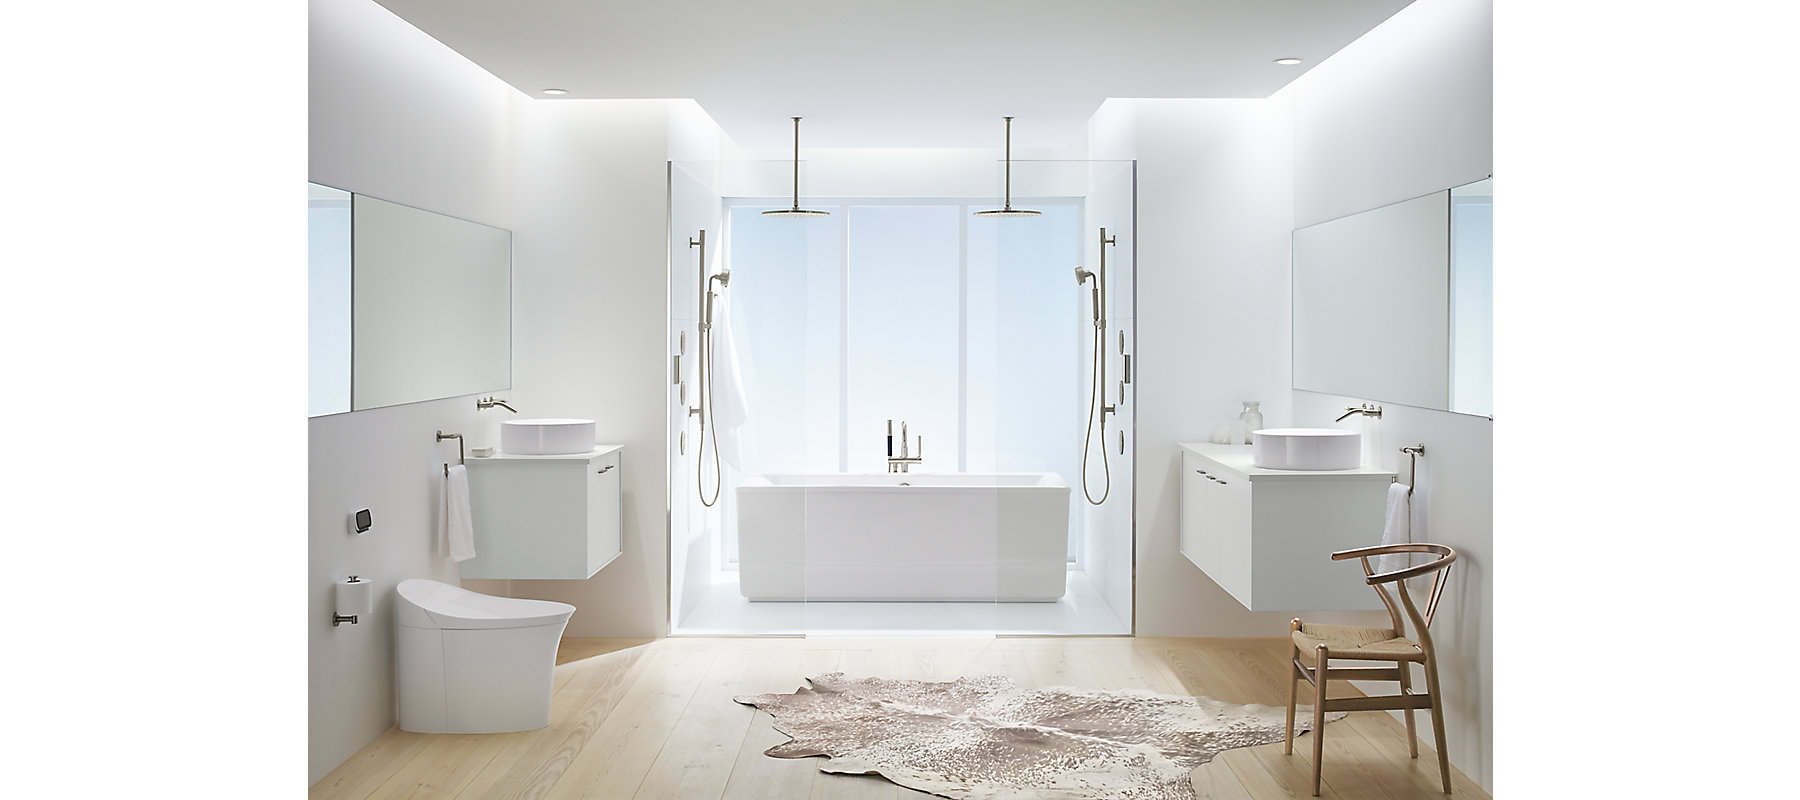 kohler | toilets, showers, sinks, faucets and more for bathroom, Badezimmer ideen